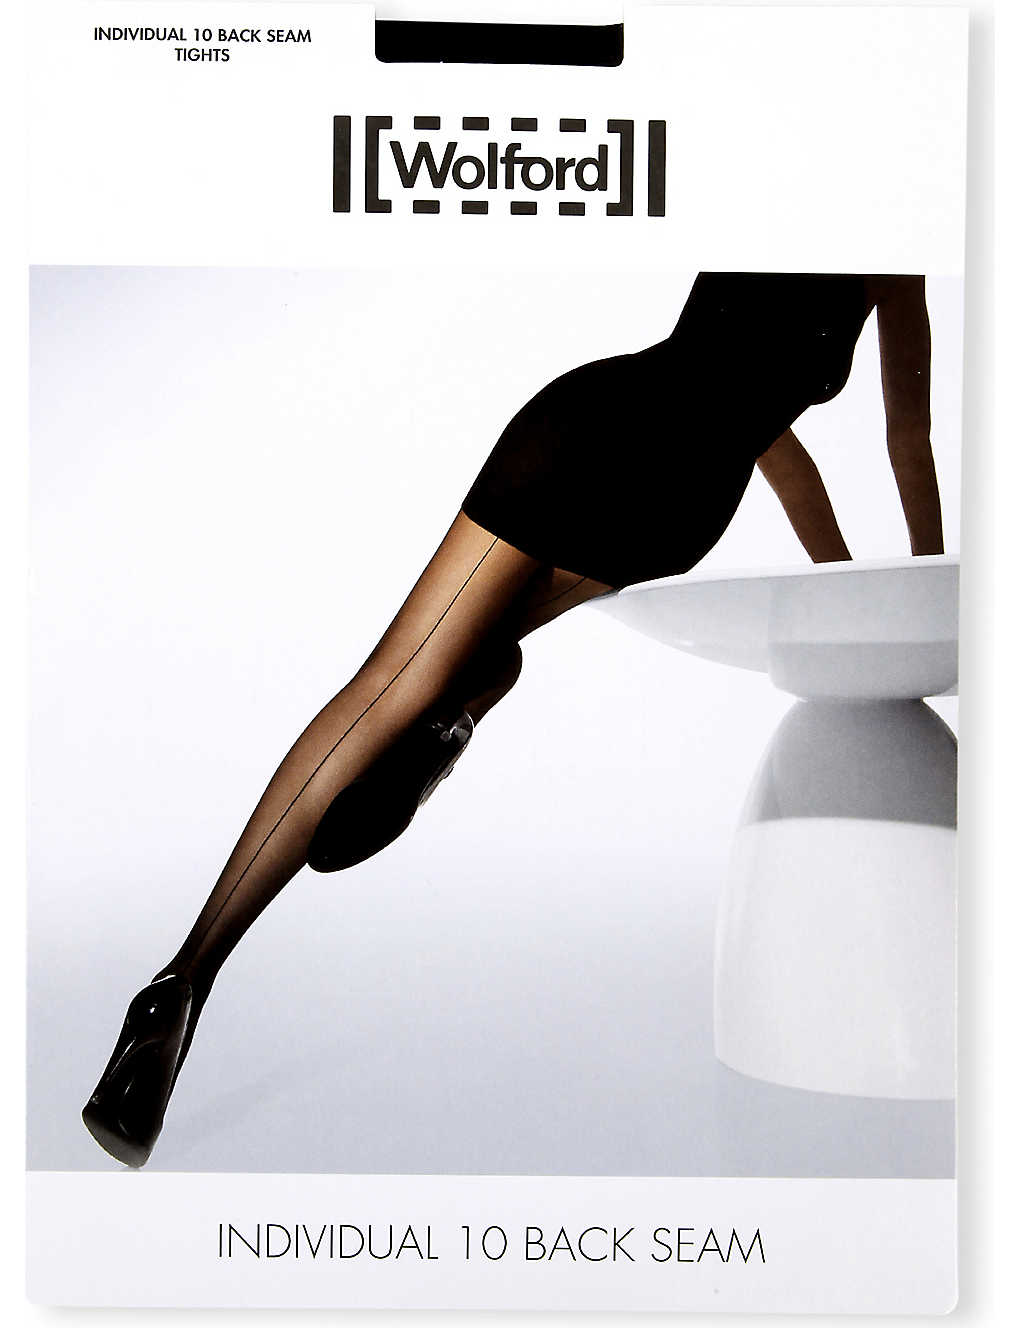 WOLFORD: Individual 10 back-seam tights